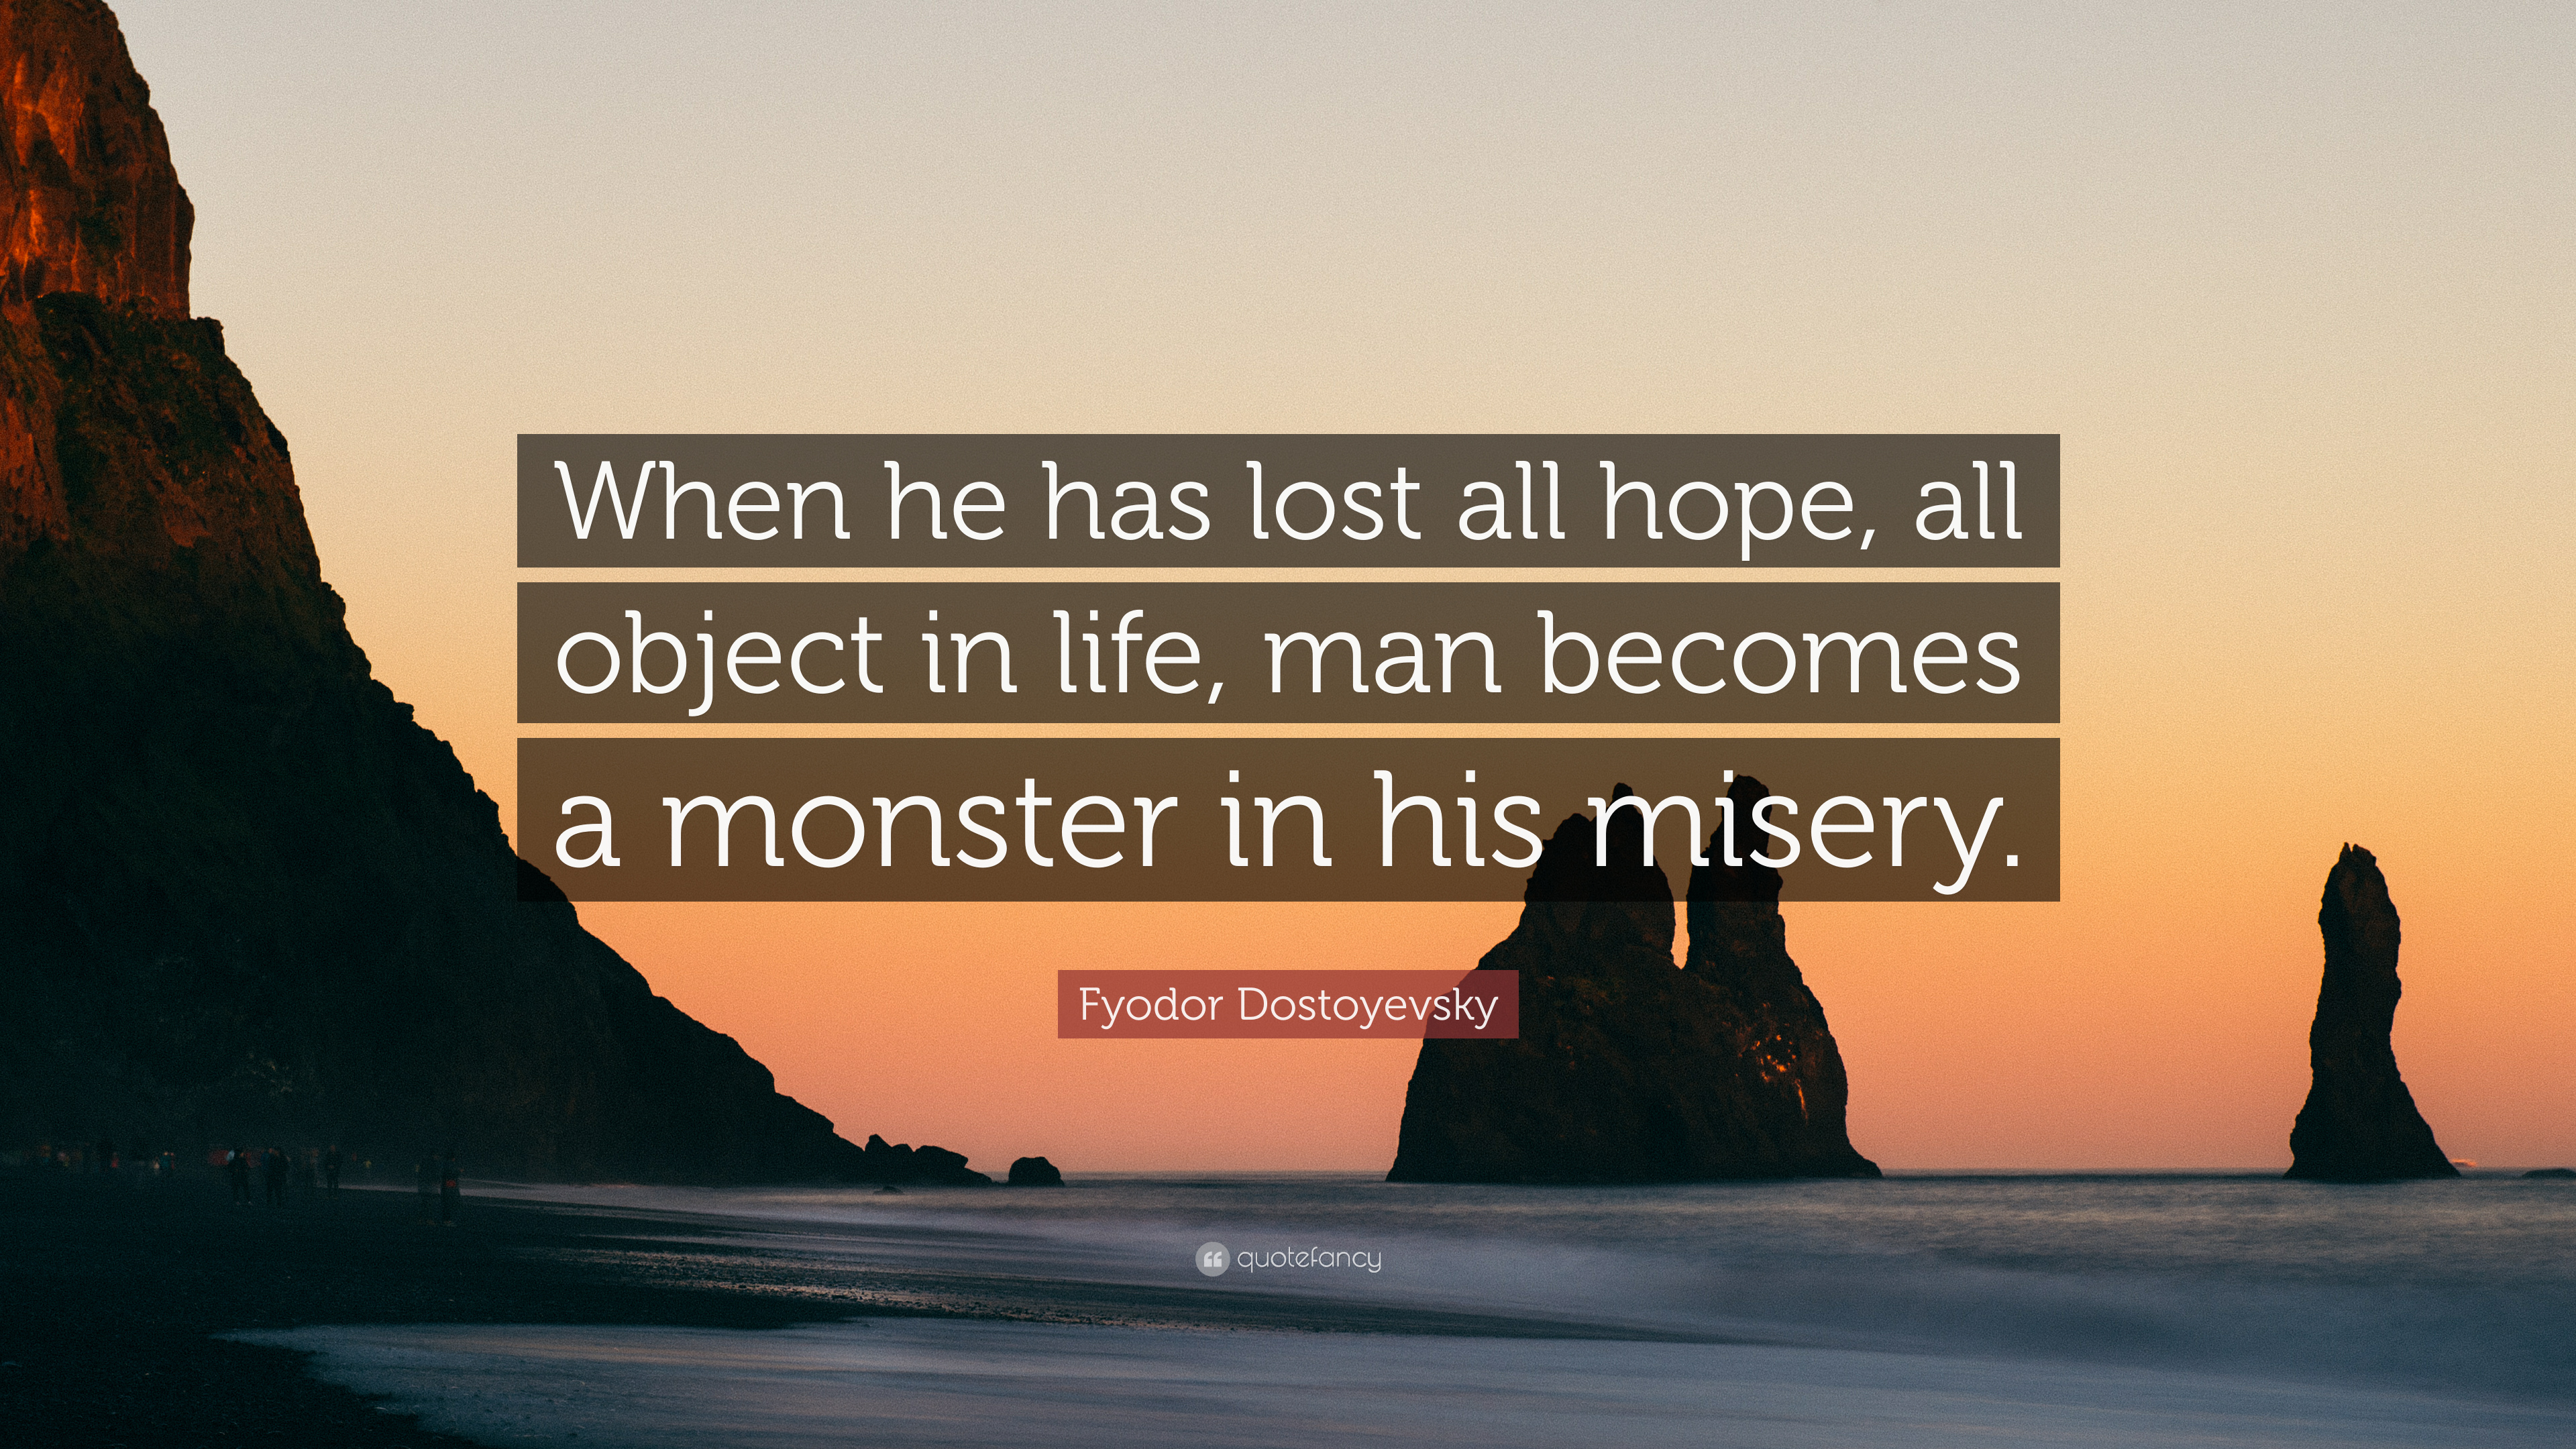 Fyodor Dostoyevsky Quote: U201cWhen He Has Lost All Hope, All Object In Life